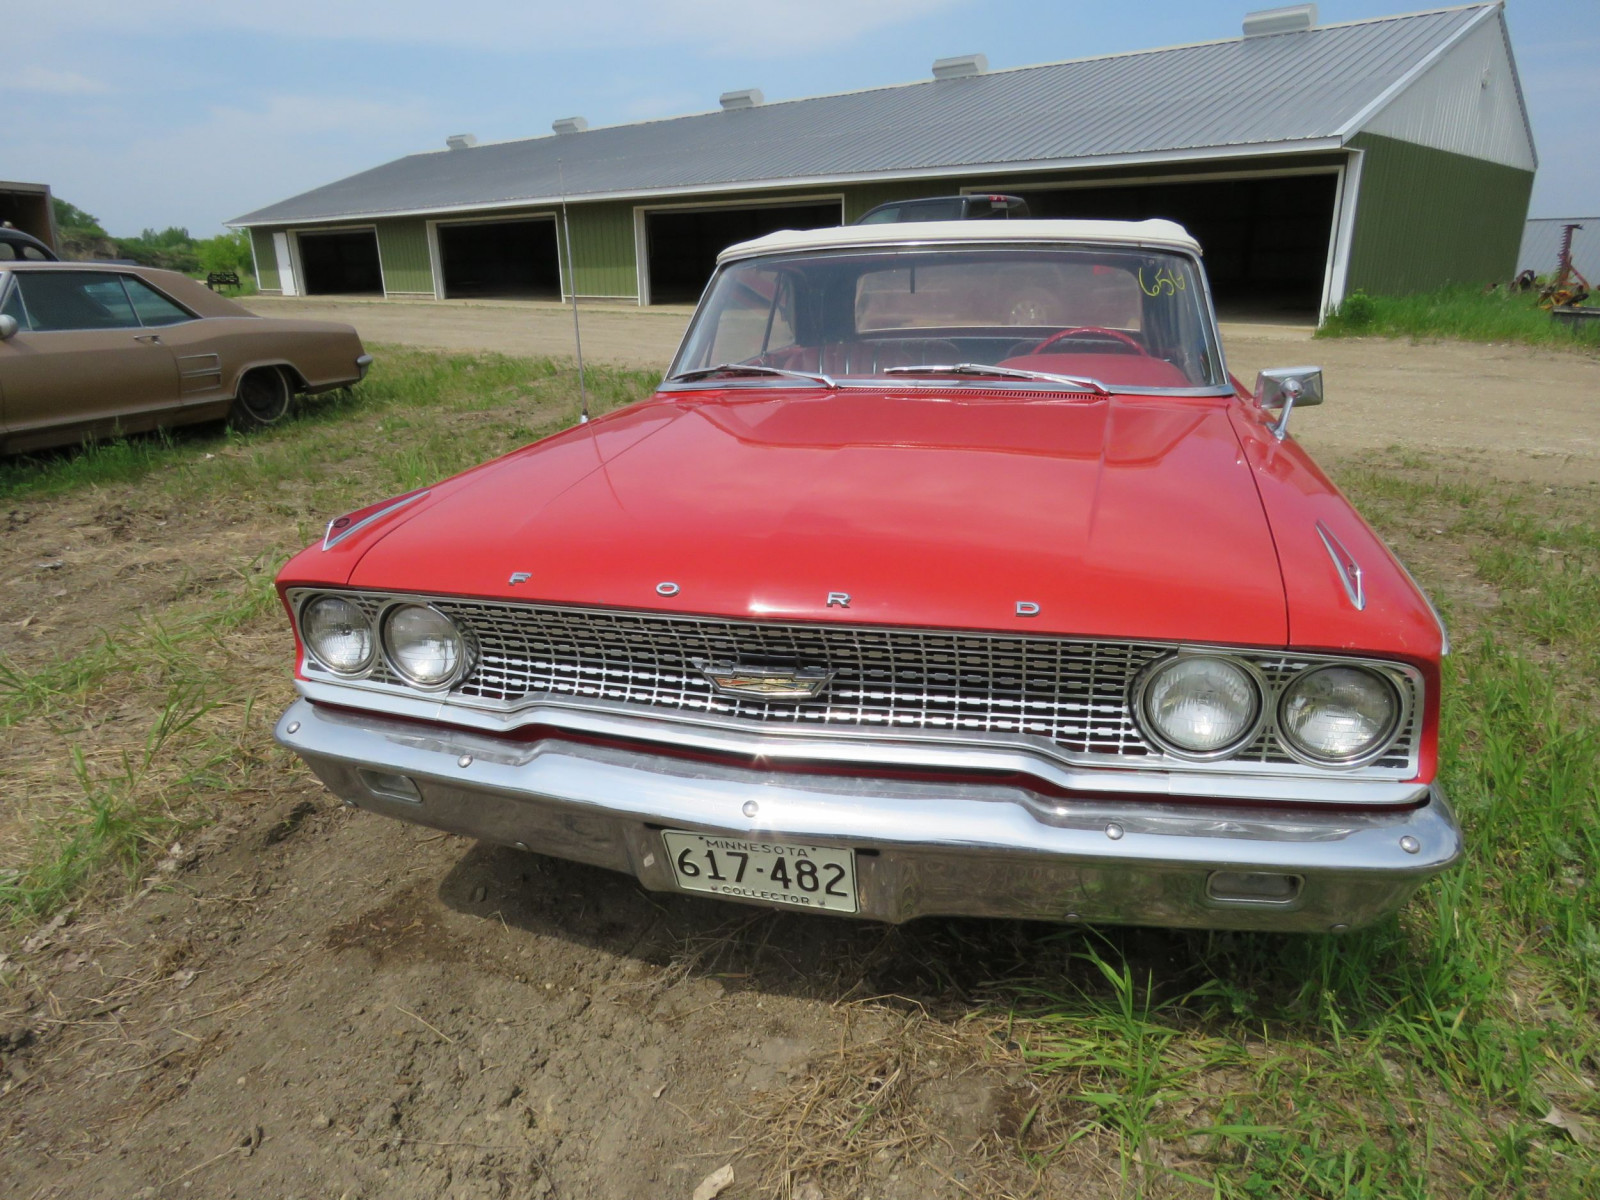 1963 Ford Galaxie 500XL Convertible 3G69Z183135 - Image 2